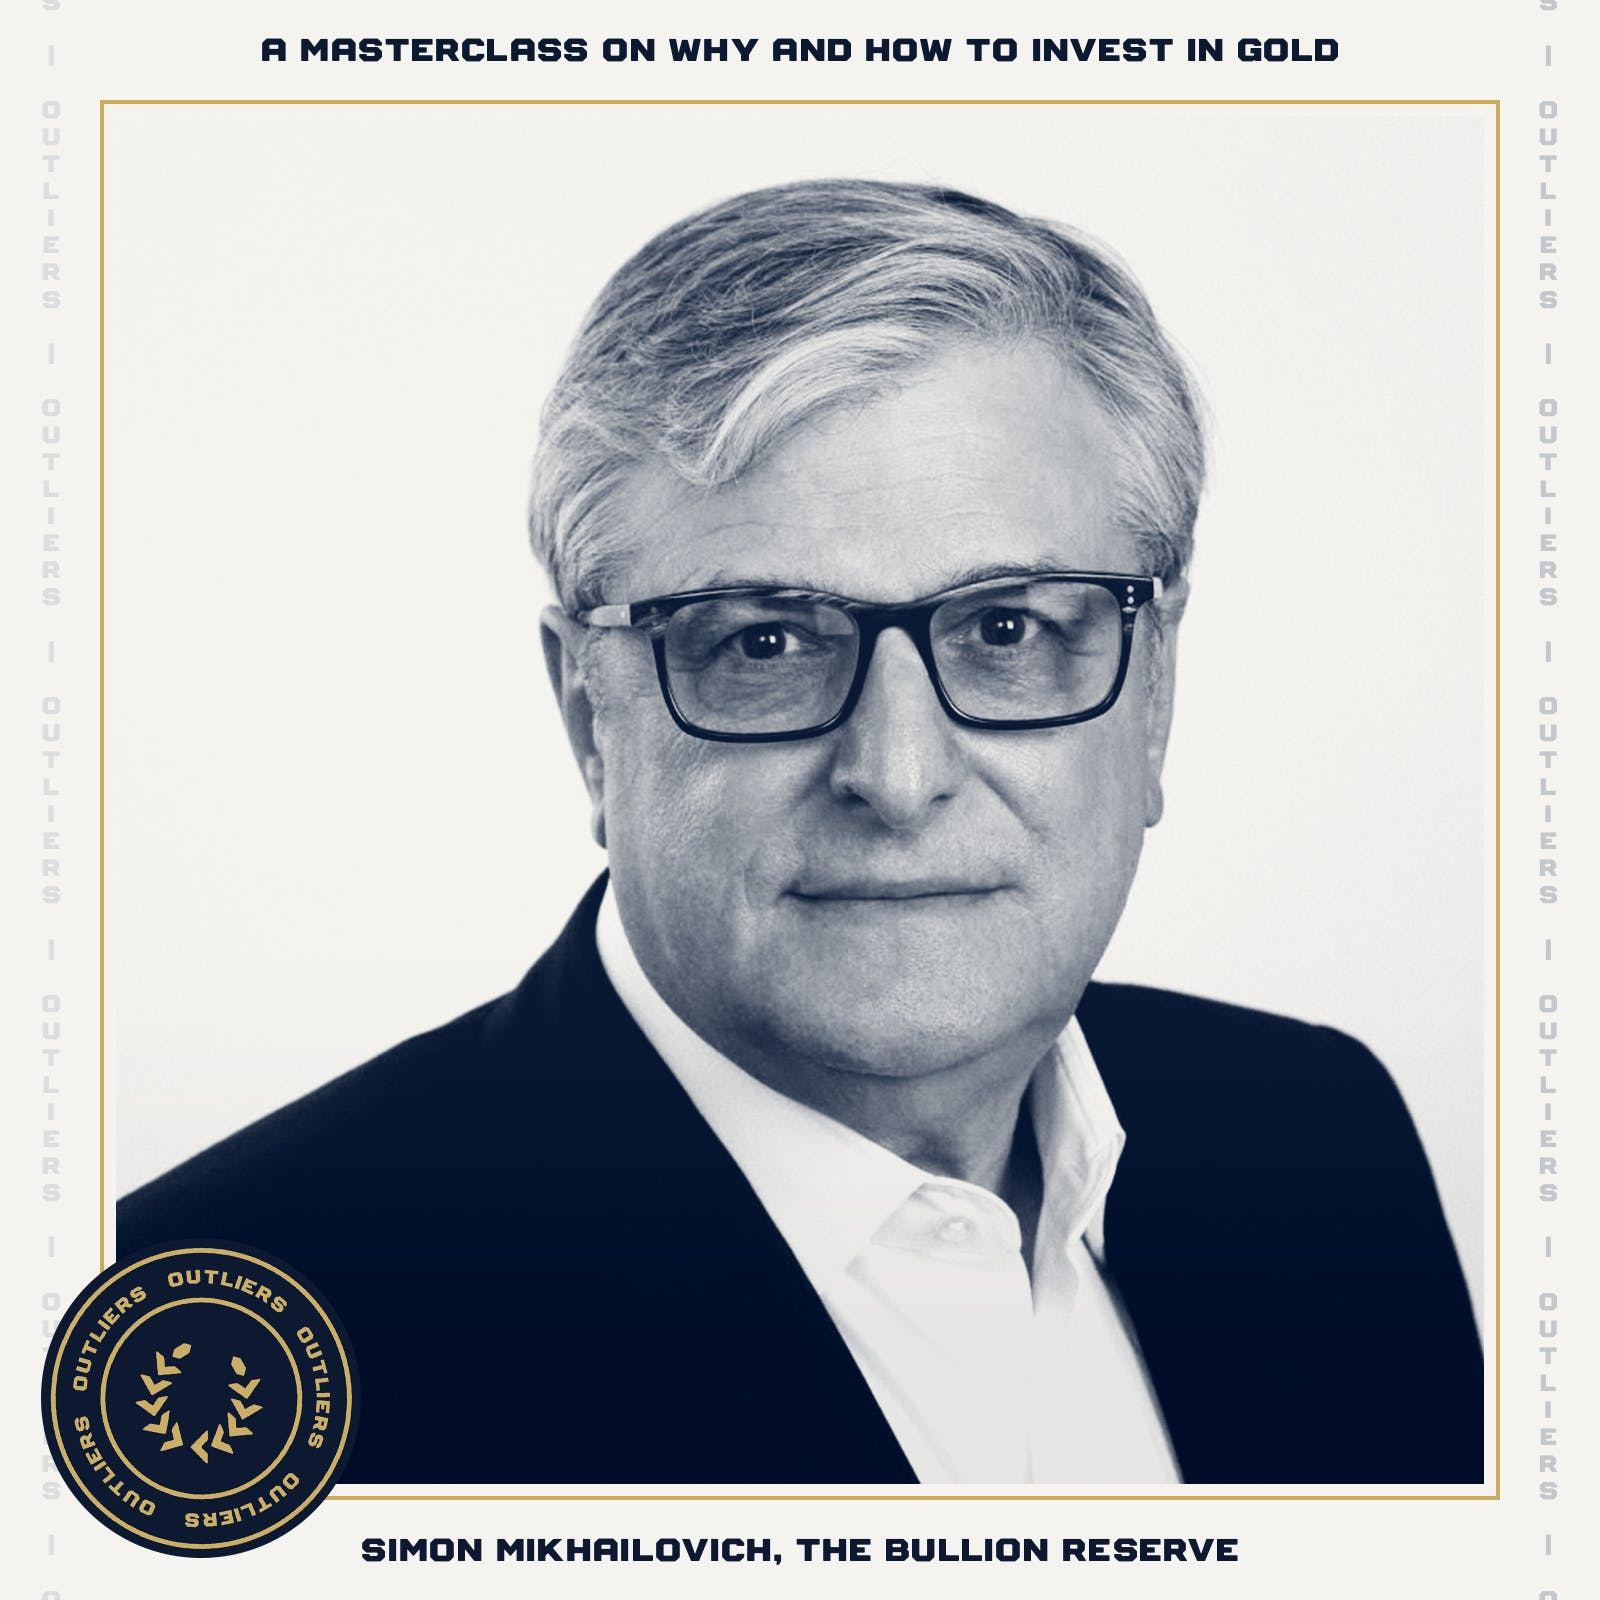 #25 Simon Mikhailovich: A Masterclass on Why and How to Invest in Gold